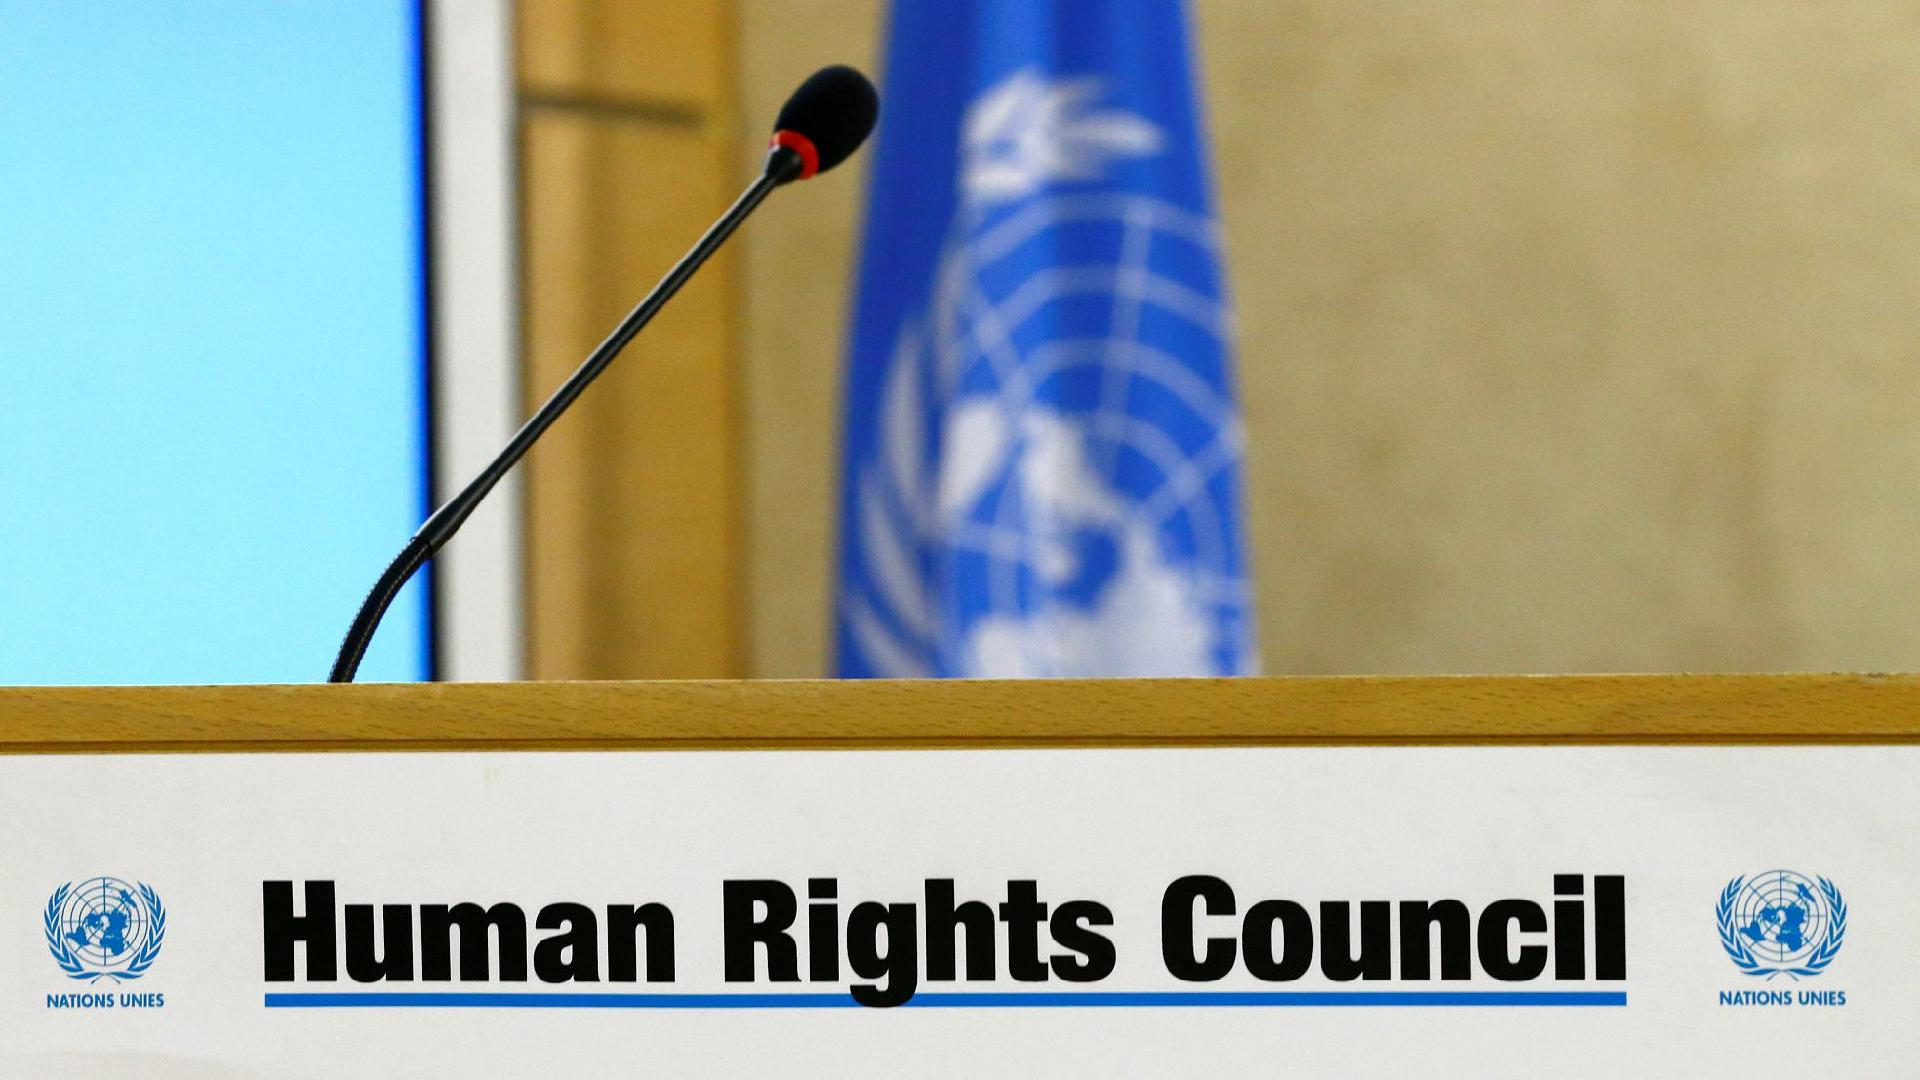 Western countries' unilateral measures condemned at UNHRC